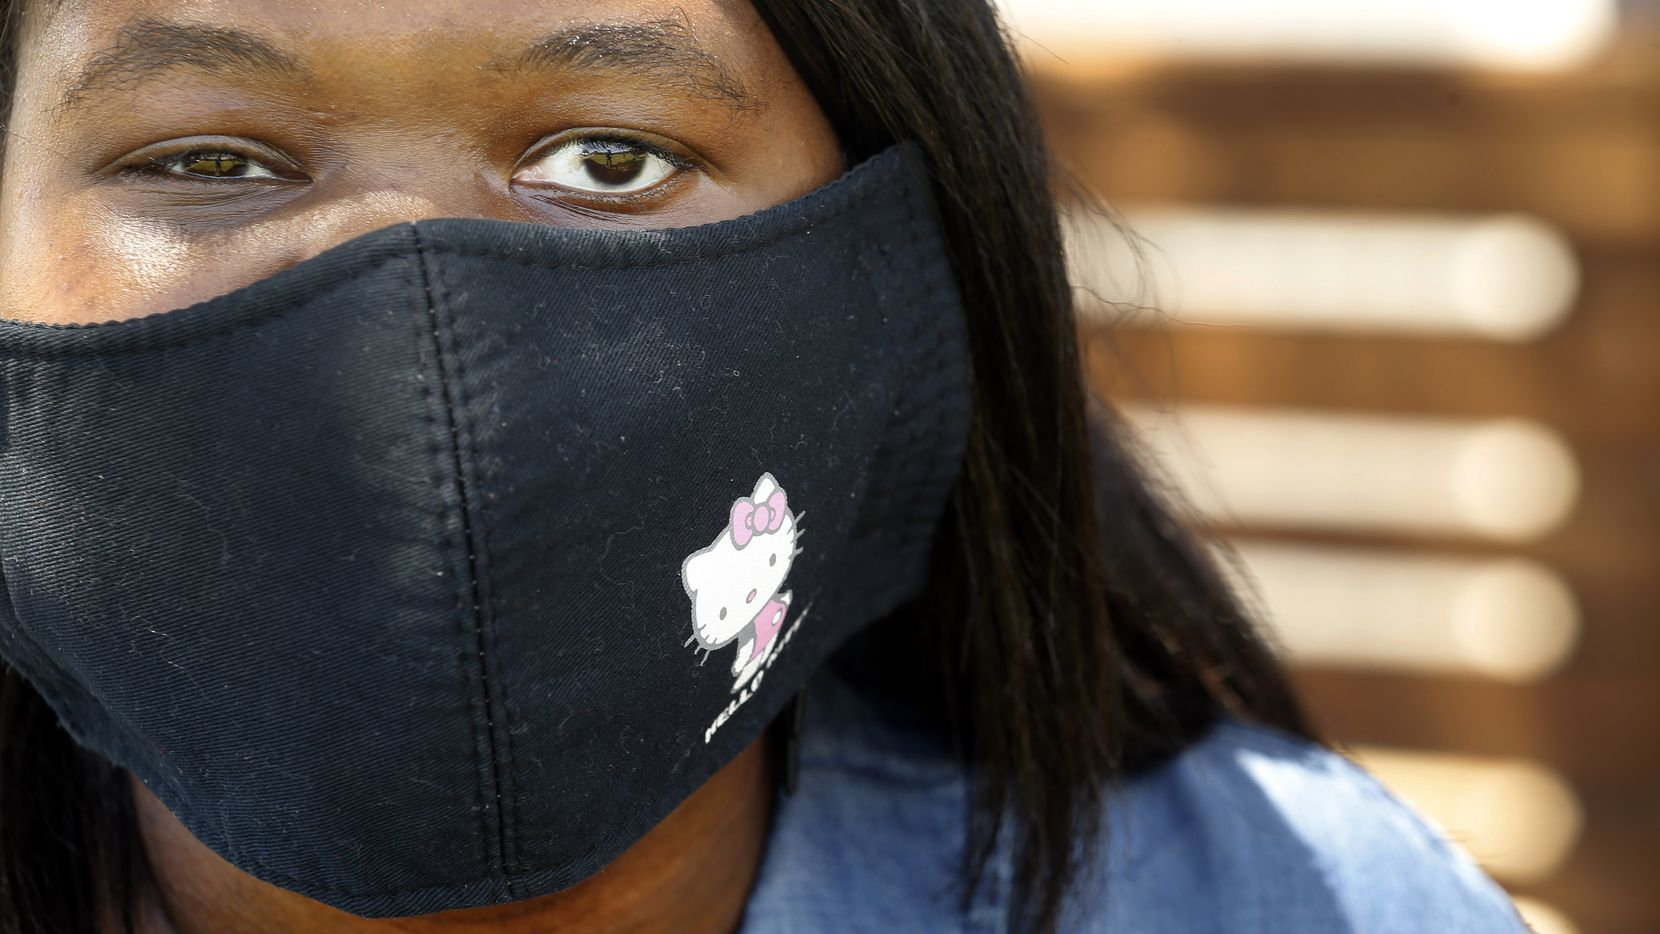 Hello Kitty is a favorite of Kiara Hearn's, so she bought a face mask with her on it. Hearn and her mother, Rhonda Hinton, of Irving were both diagnosed with COVID-19, the illness caused by the coronavirus. Hinton experienced only minor symptoms, but Hearn, who has lupus, spent more than a week at Parkland Memorial Hospital.